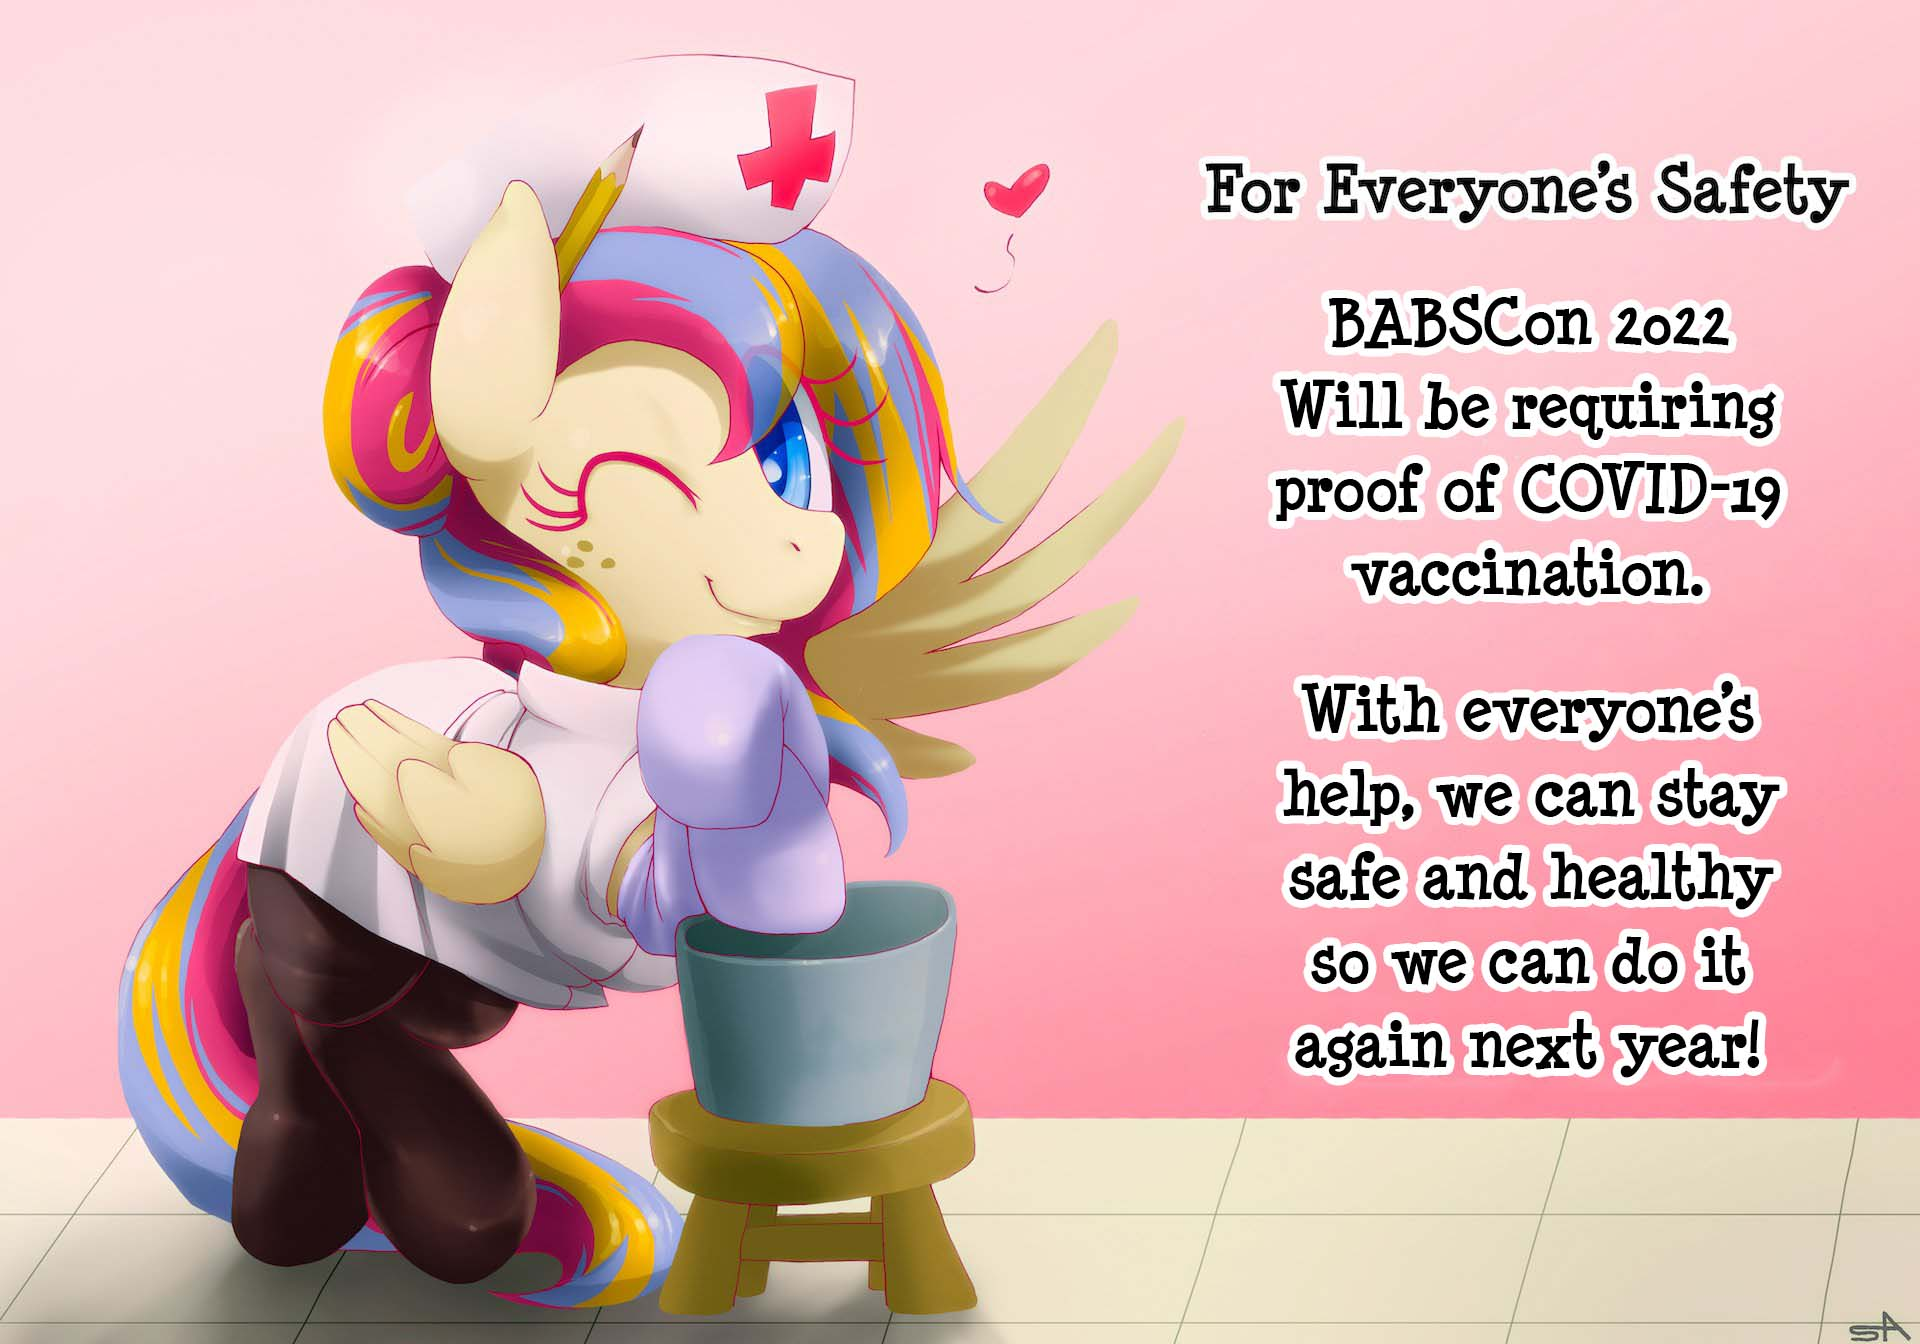 BABSCon 2022: Proof of Vaccination Required to Keep Everyone Safe!